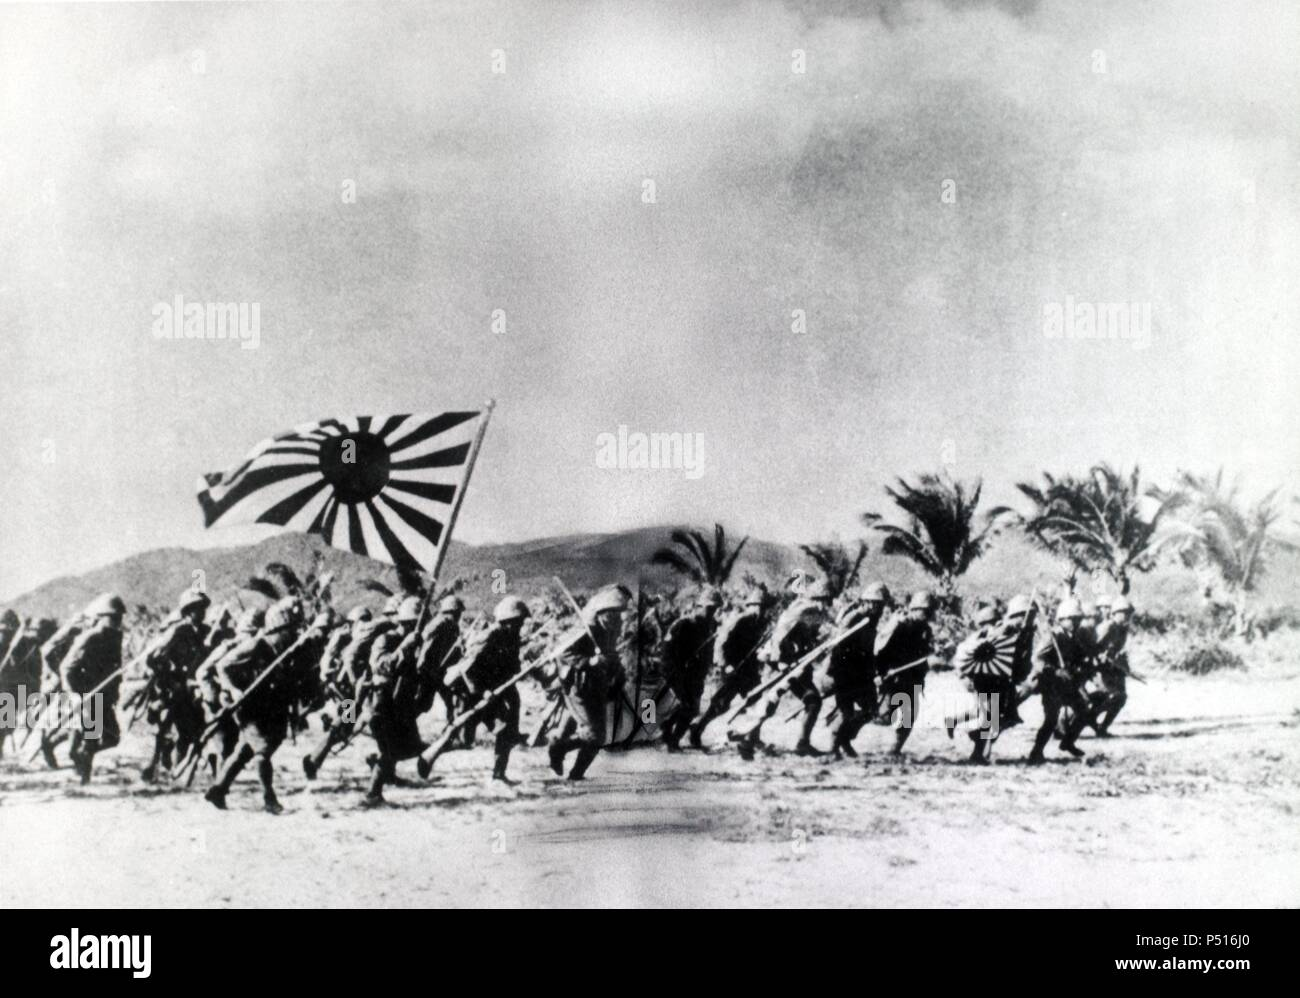 The Japanese Army, under the Bannar of the Rising Sun. Storm ashore on a Pacific Island. - Stock Image